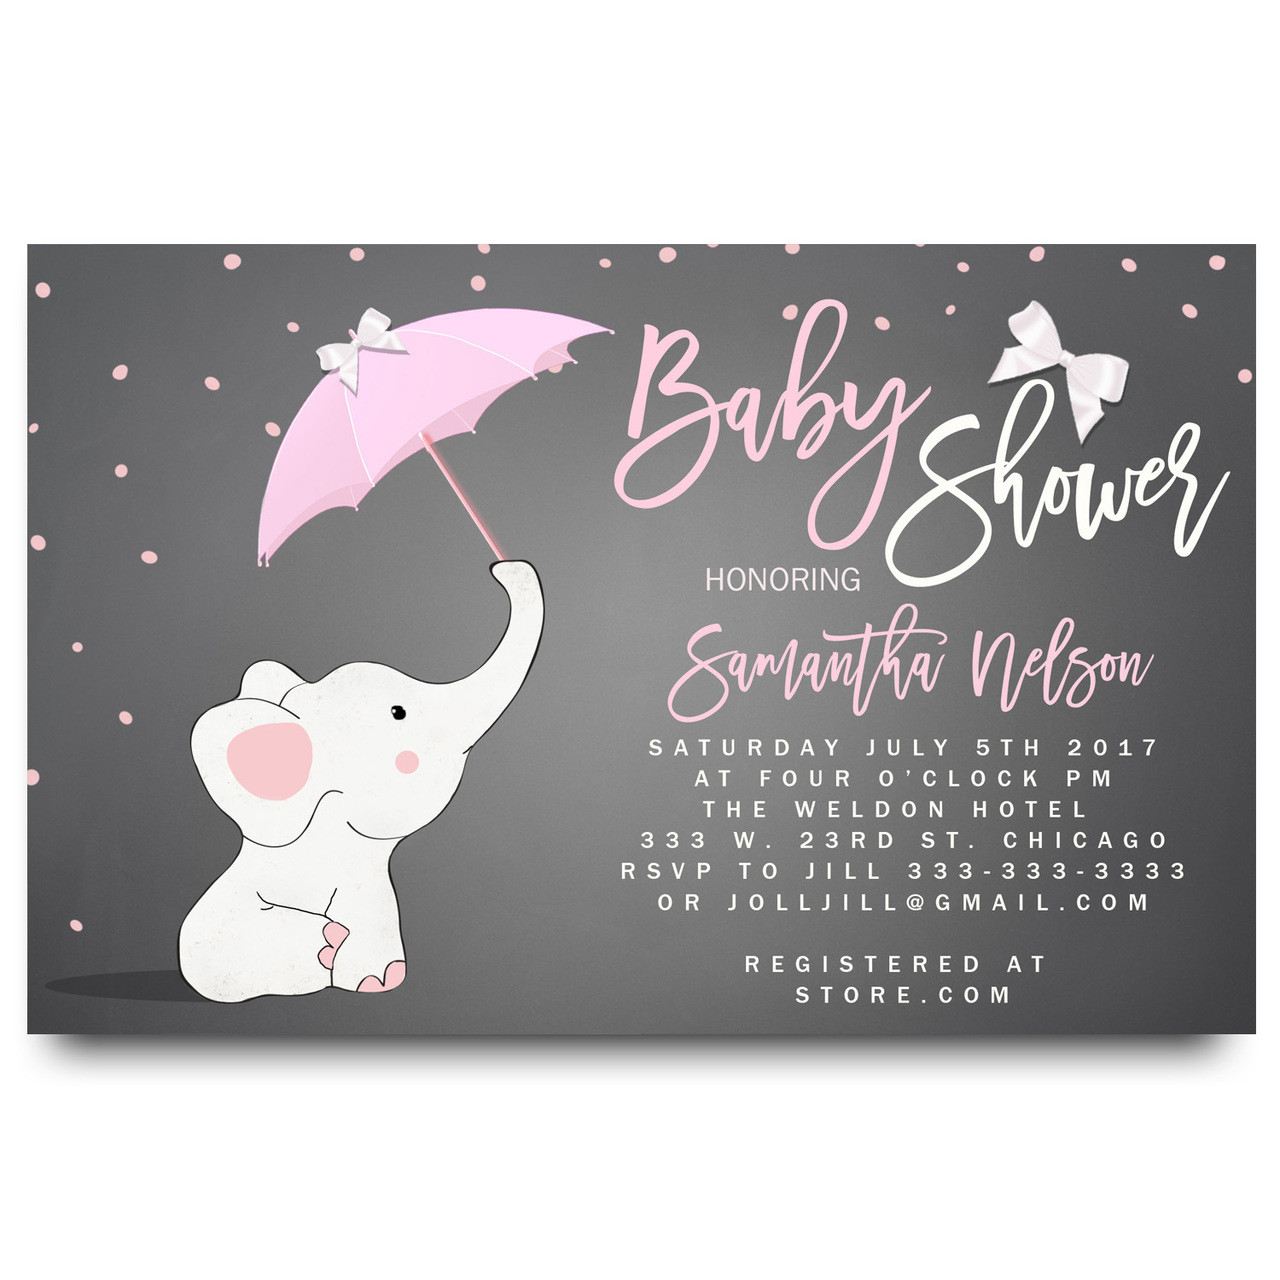 of elephant shower images eecb invitations recent posts invi baby on theme